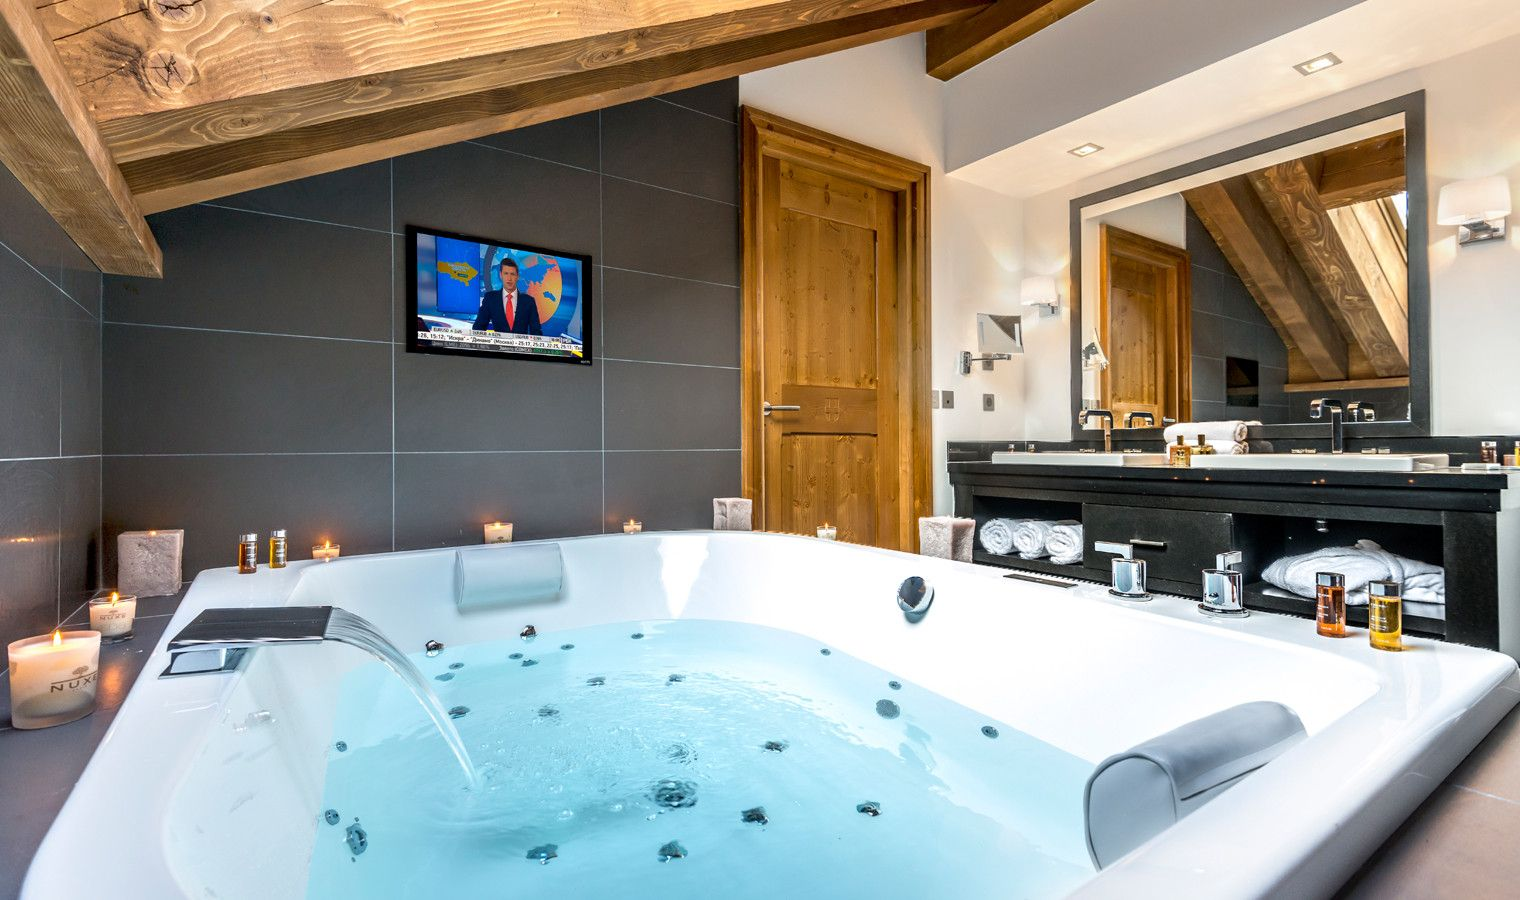 Hotel thalasso lille | Appart hotel Lille - Location courte ...